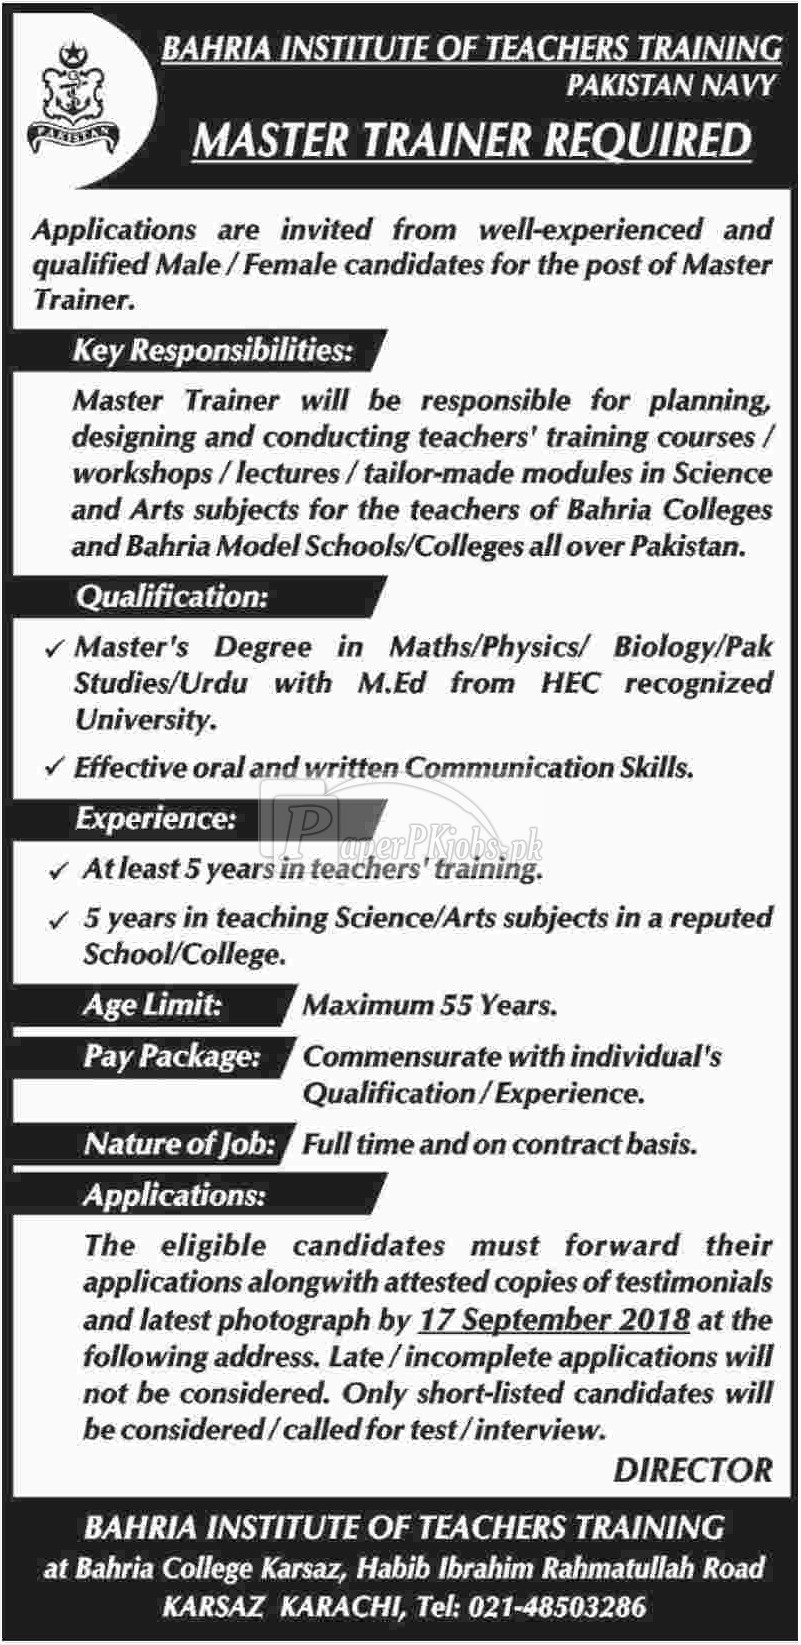 Bahria Institute of Teachers Training Pakistan Navy Jobs 2018